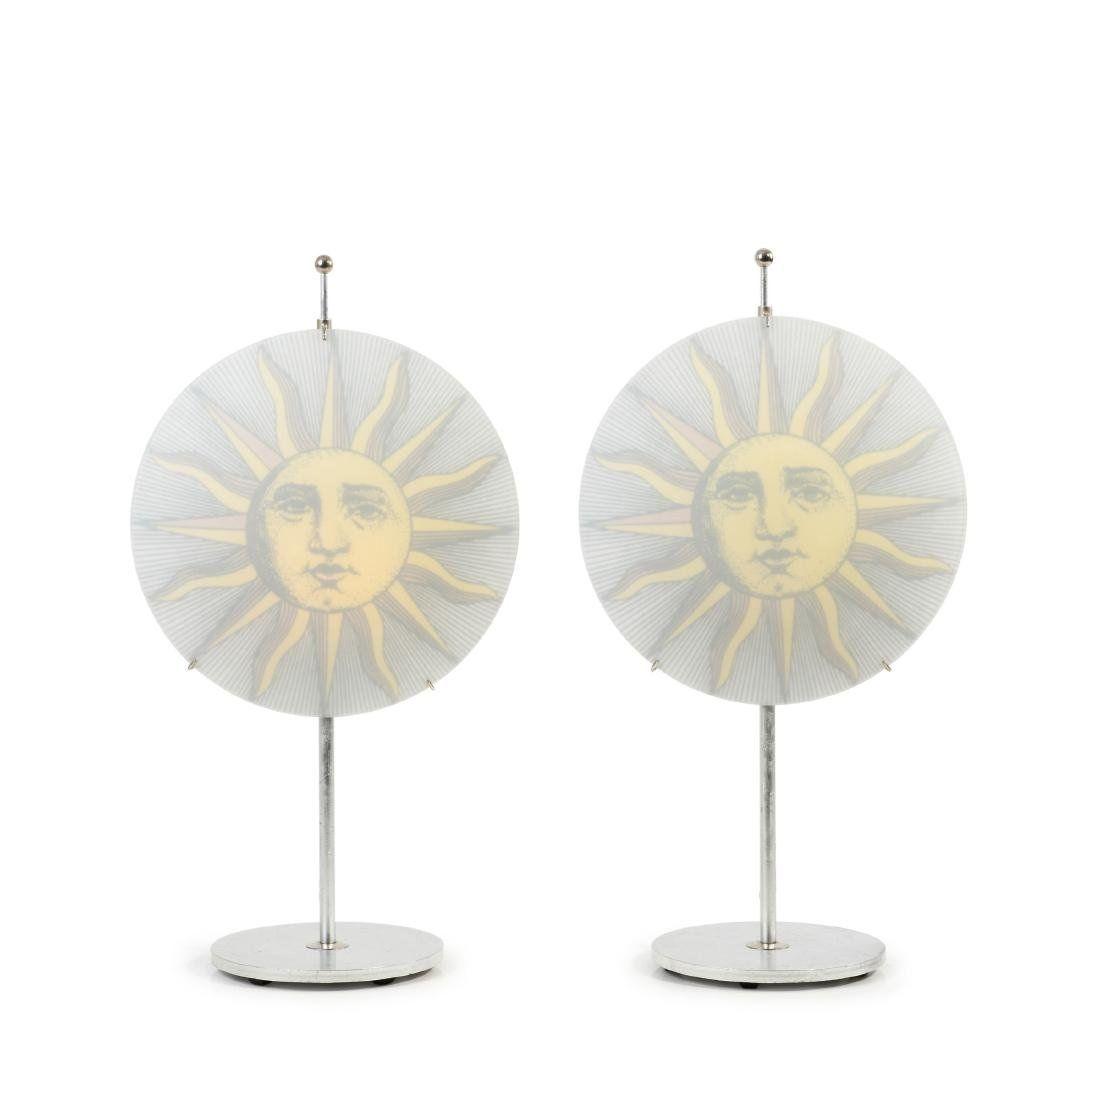 Two 'Sole' table lights, c1995